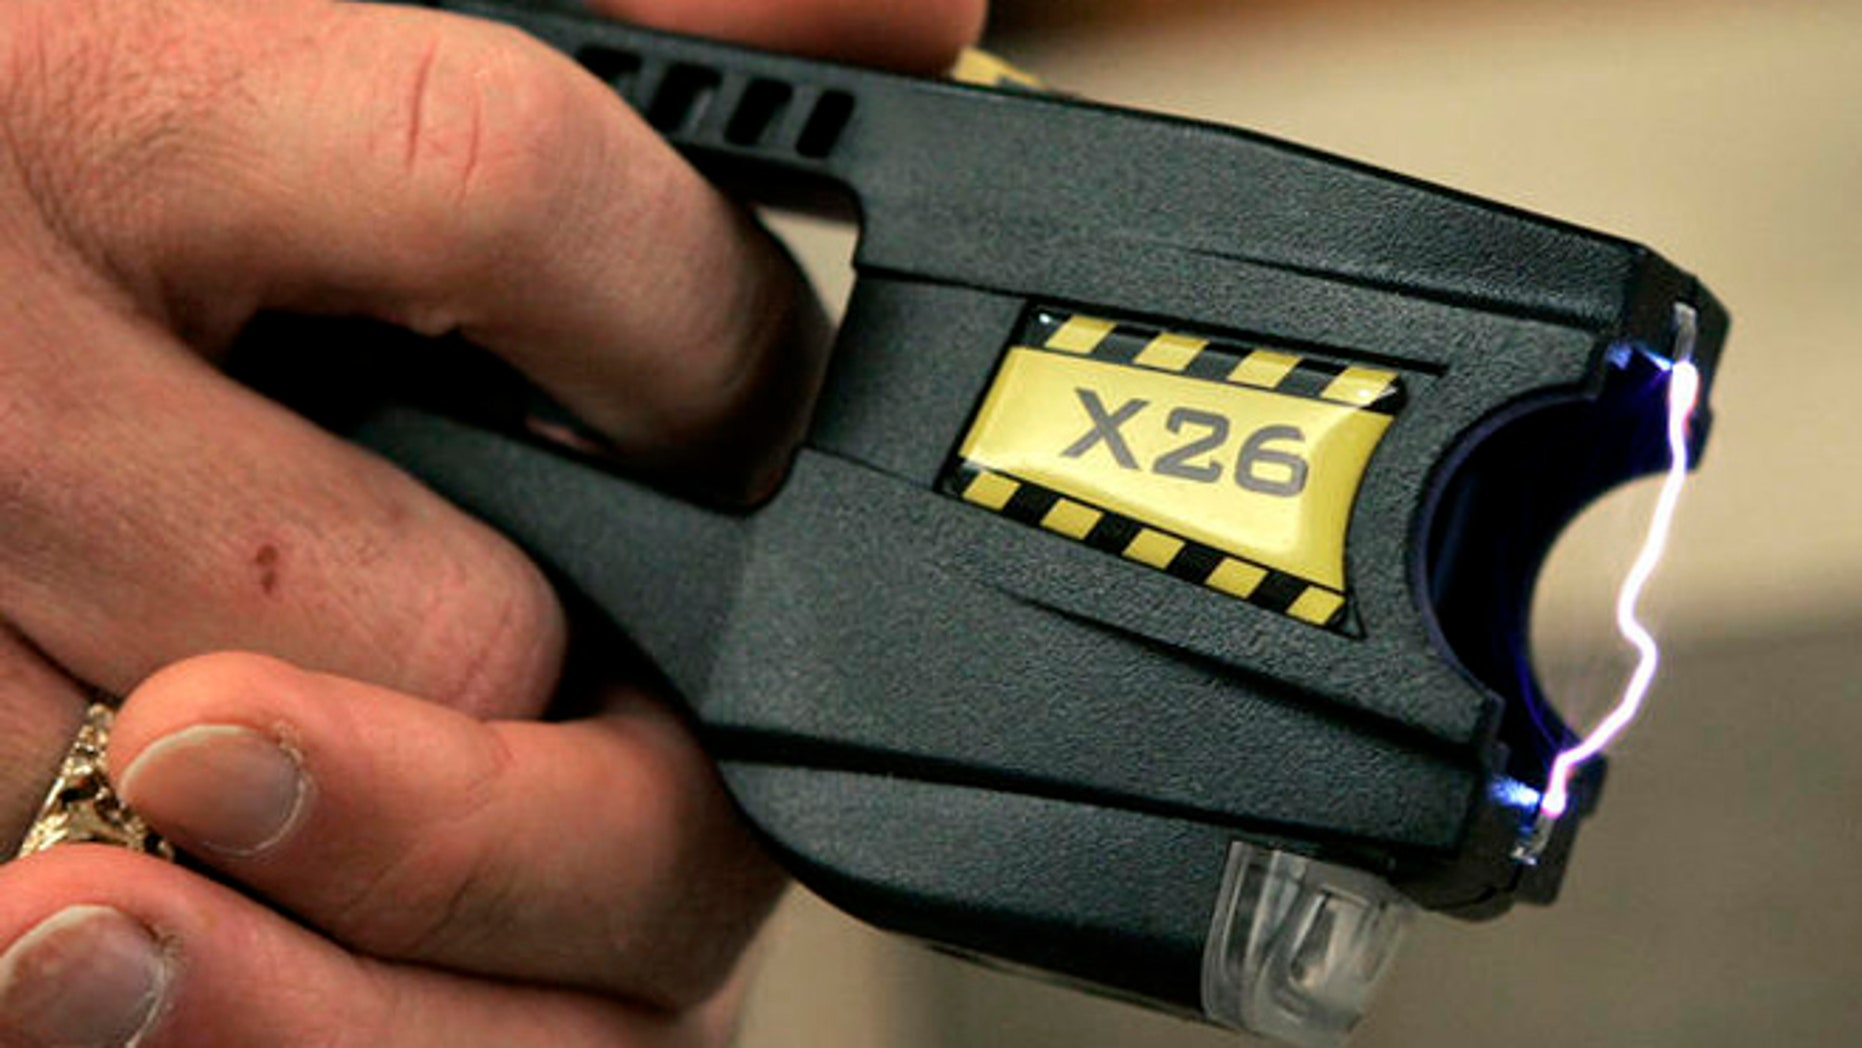 A Taser X26 stun gun is displayed at the Oakland Country Sheriff's office in Pontiac, Mich., Tuesday, Dec. 12, 2006. A little-noticed bill that would let more people use Tasers and stun guns in Michigan is awaiting Gov. Jennifer Granholm's signature, though critics hope she wields her veto pen. The legislation approved by the state Senate 30-7 last week would exempt detention facilities and private security officers at some hospitals and malls from a ban against Tasers, which have been criticized for causing deaths. (AP Photo/Carlos Osorio)